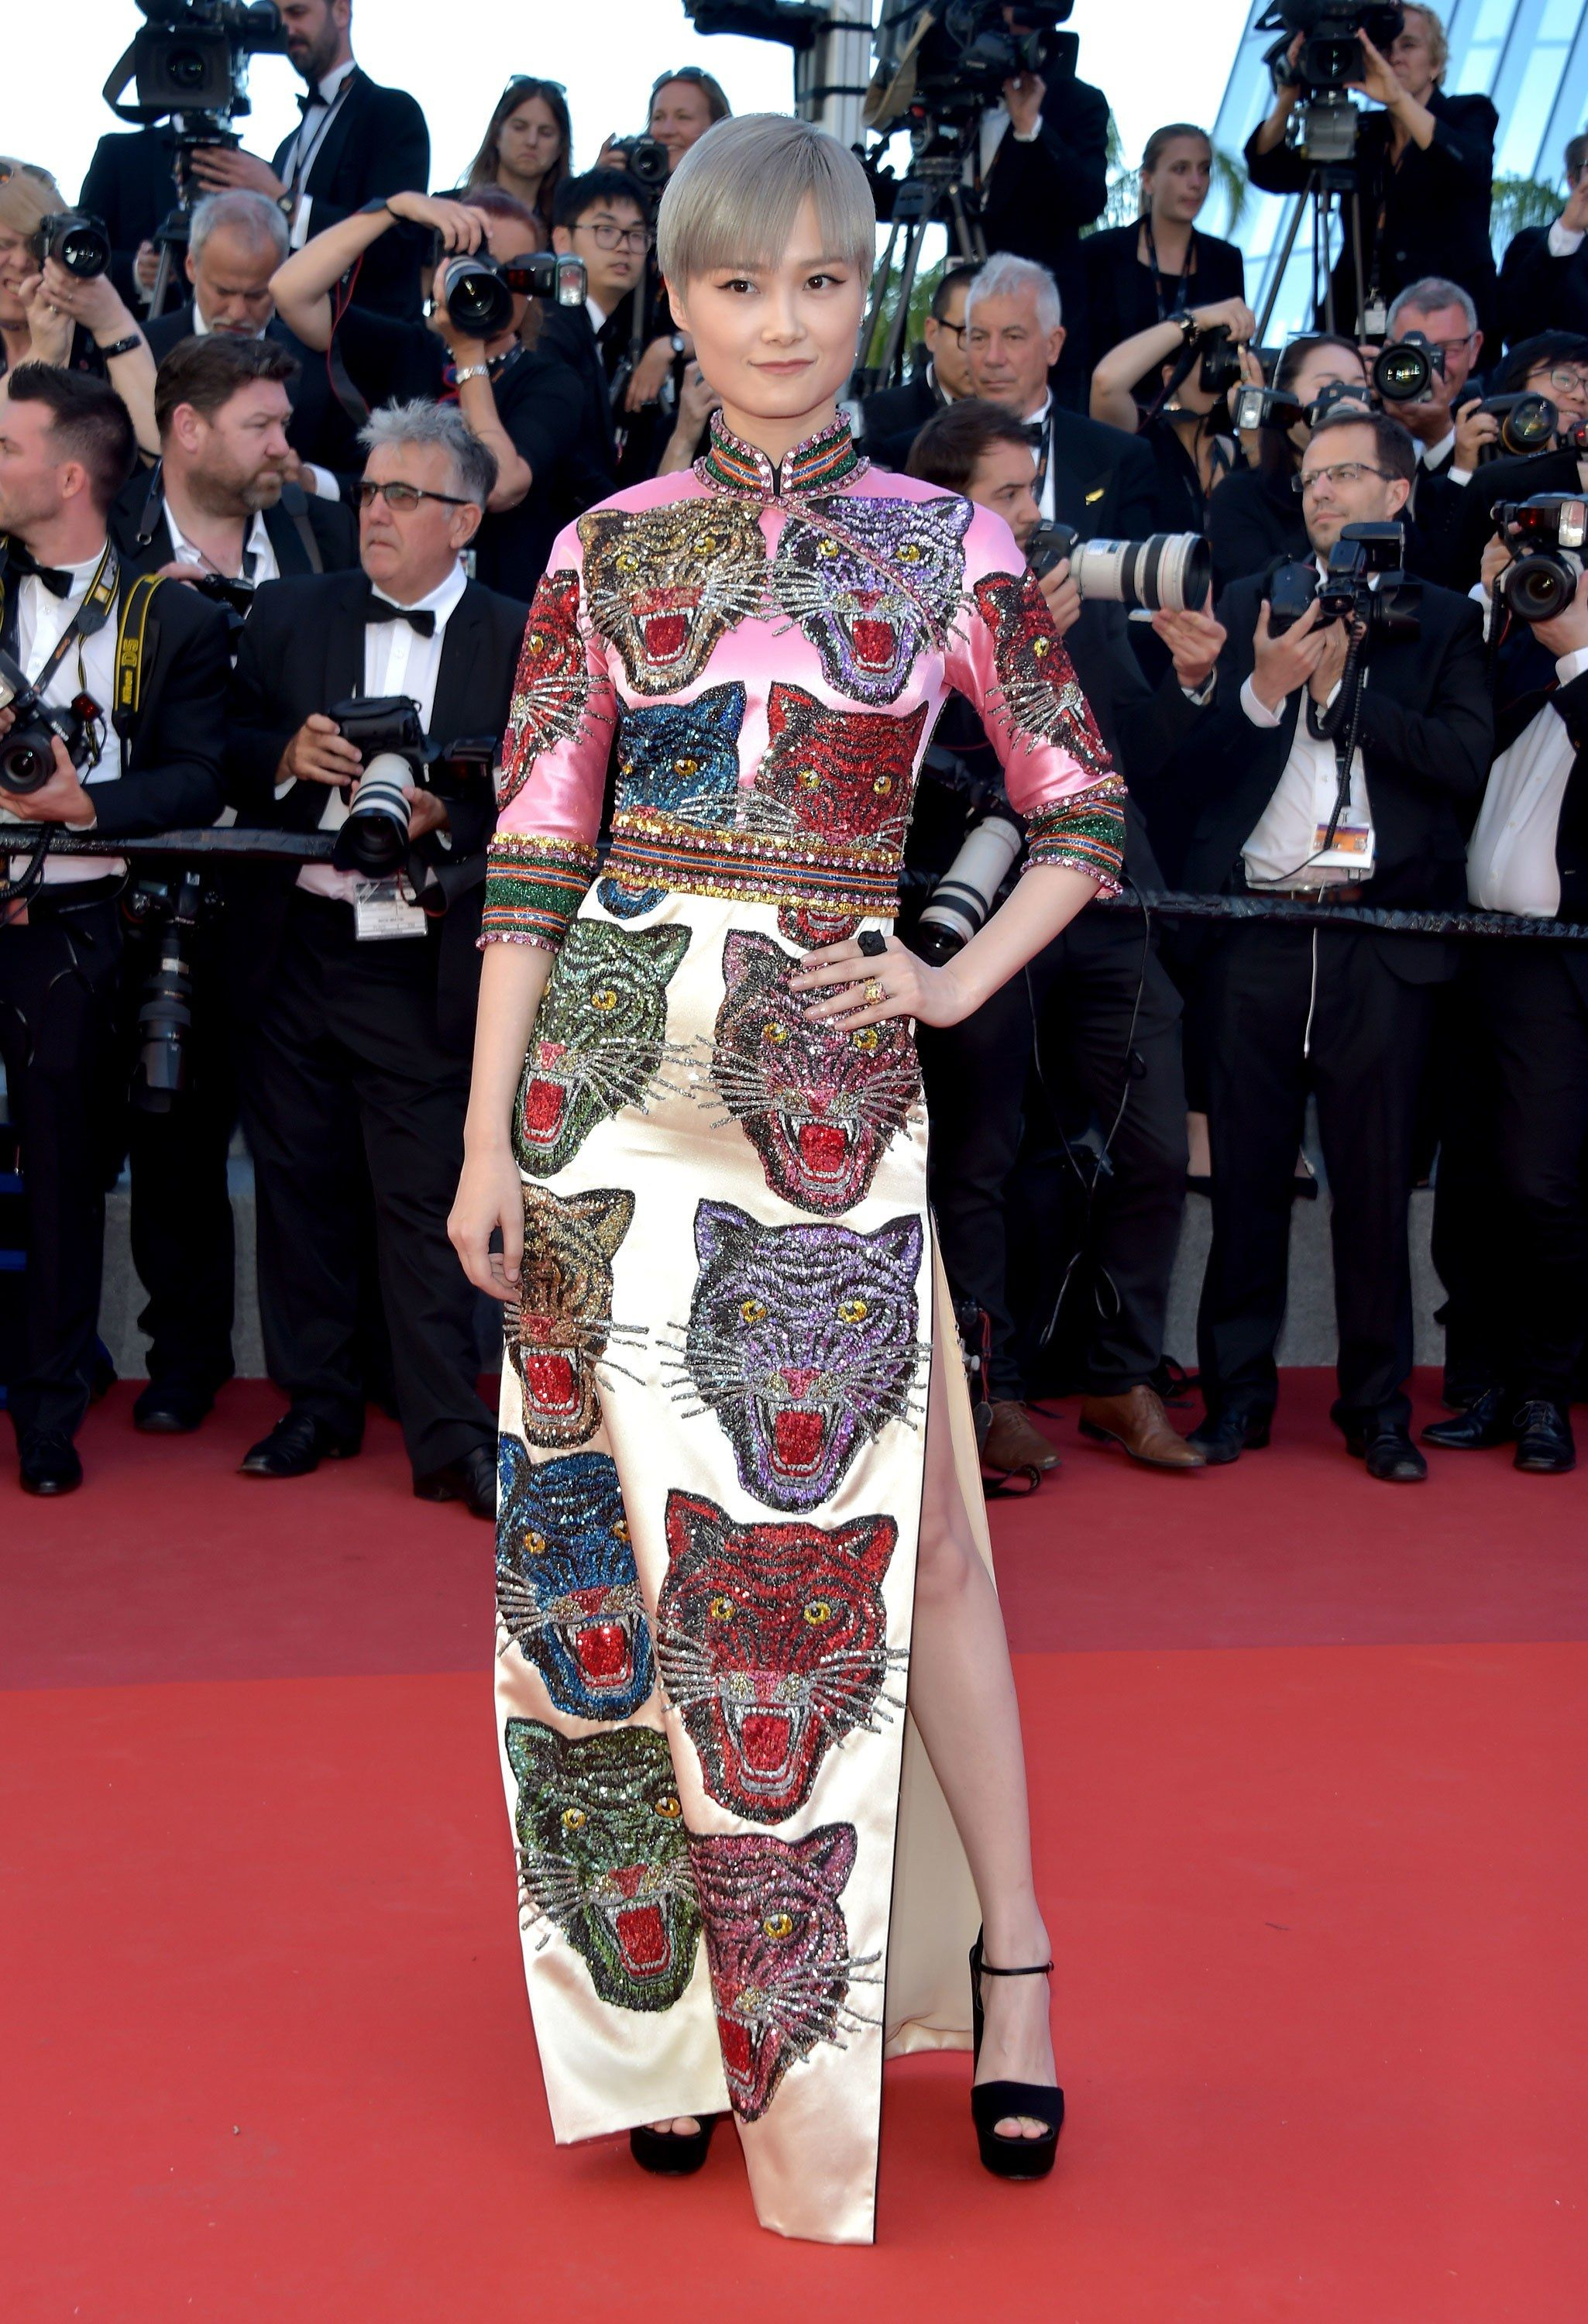 Look - Film cannes festival fashions video